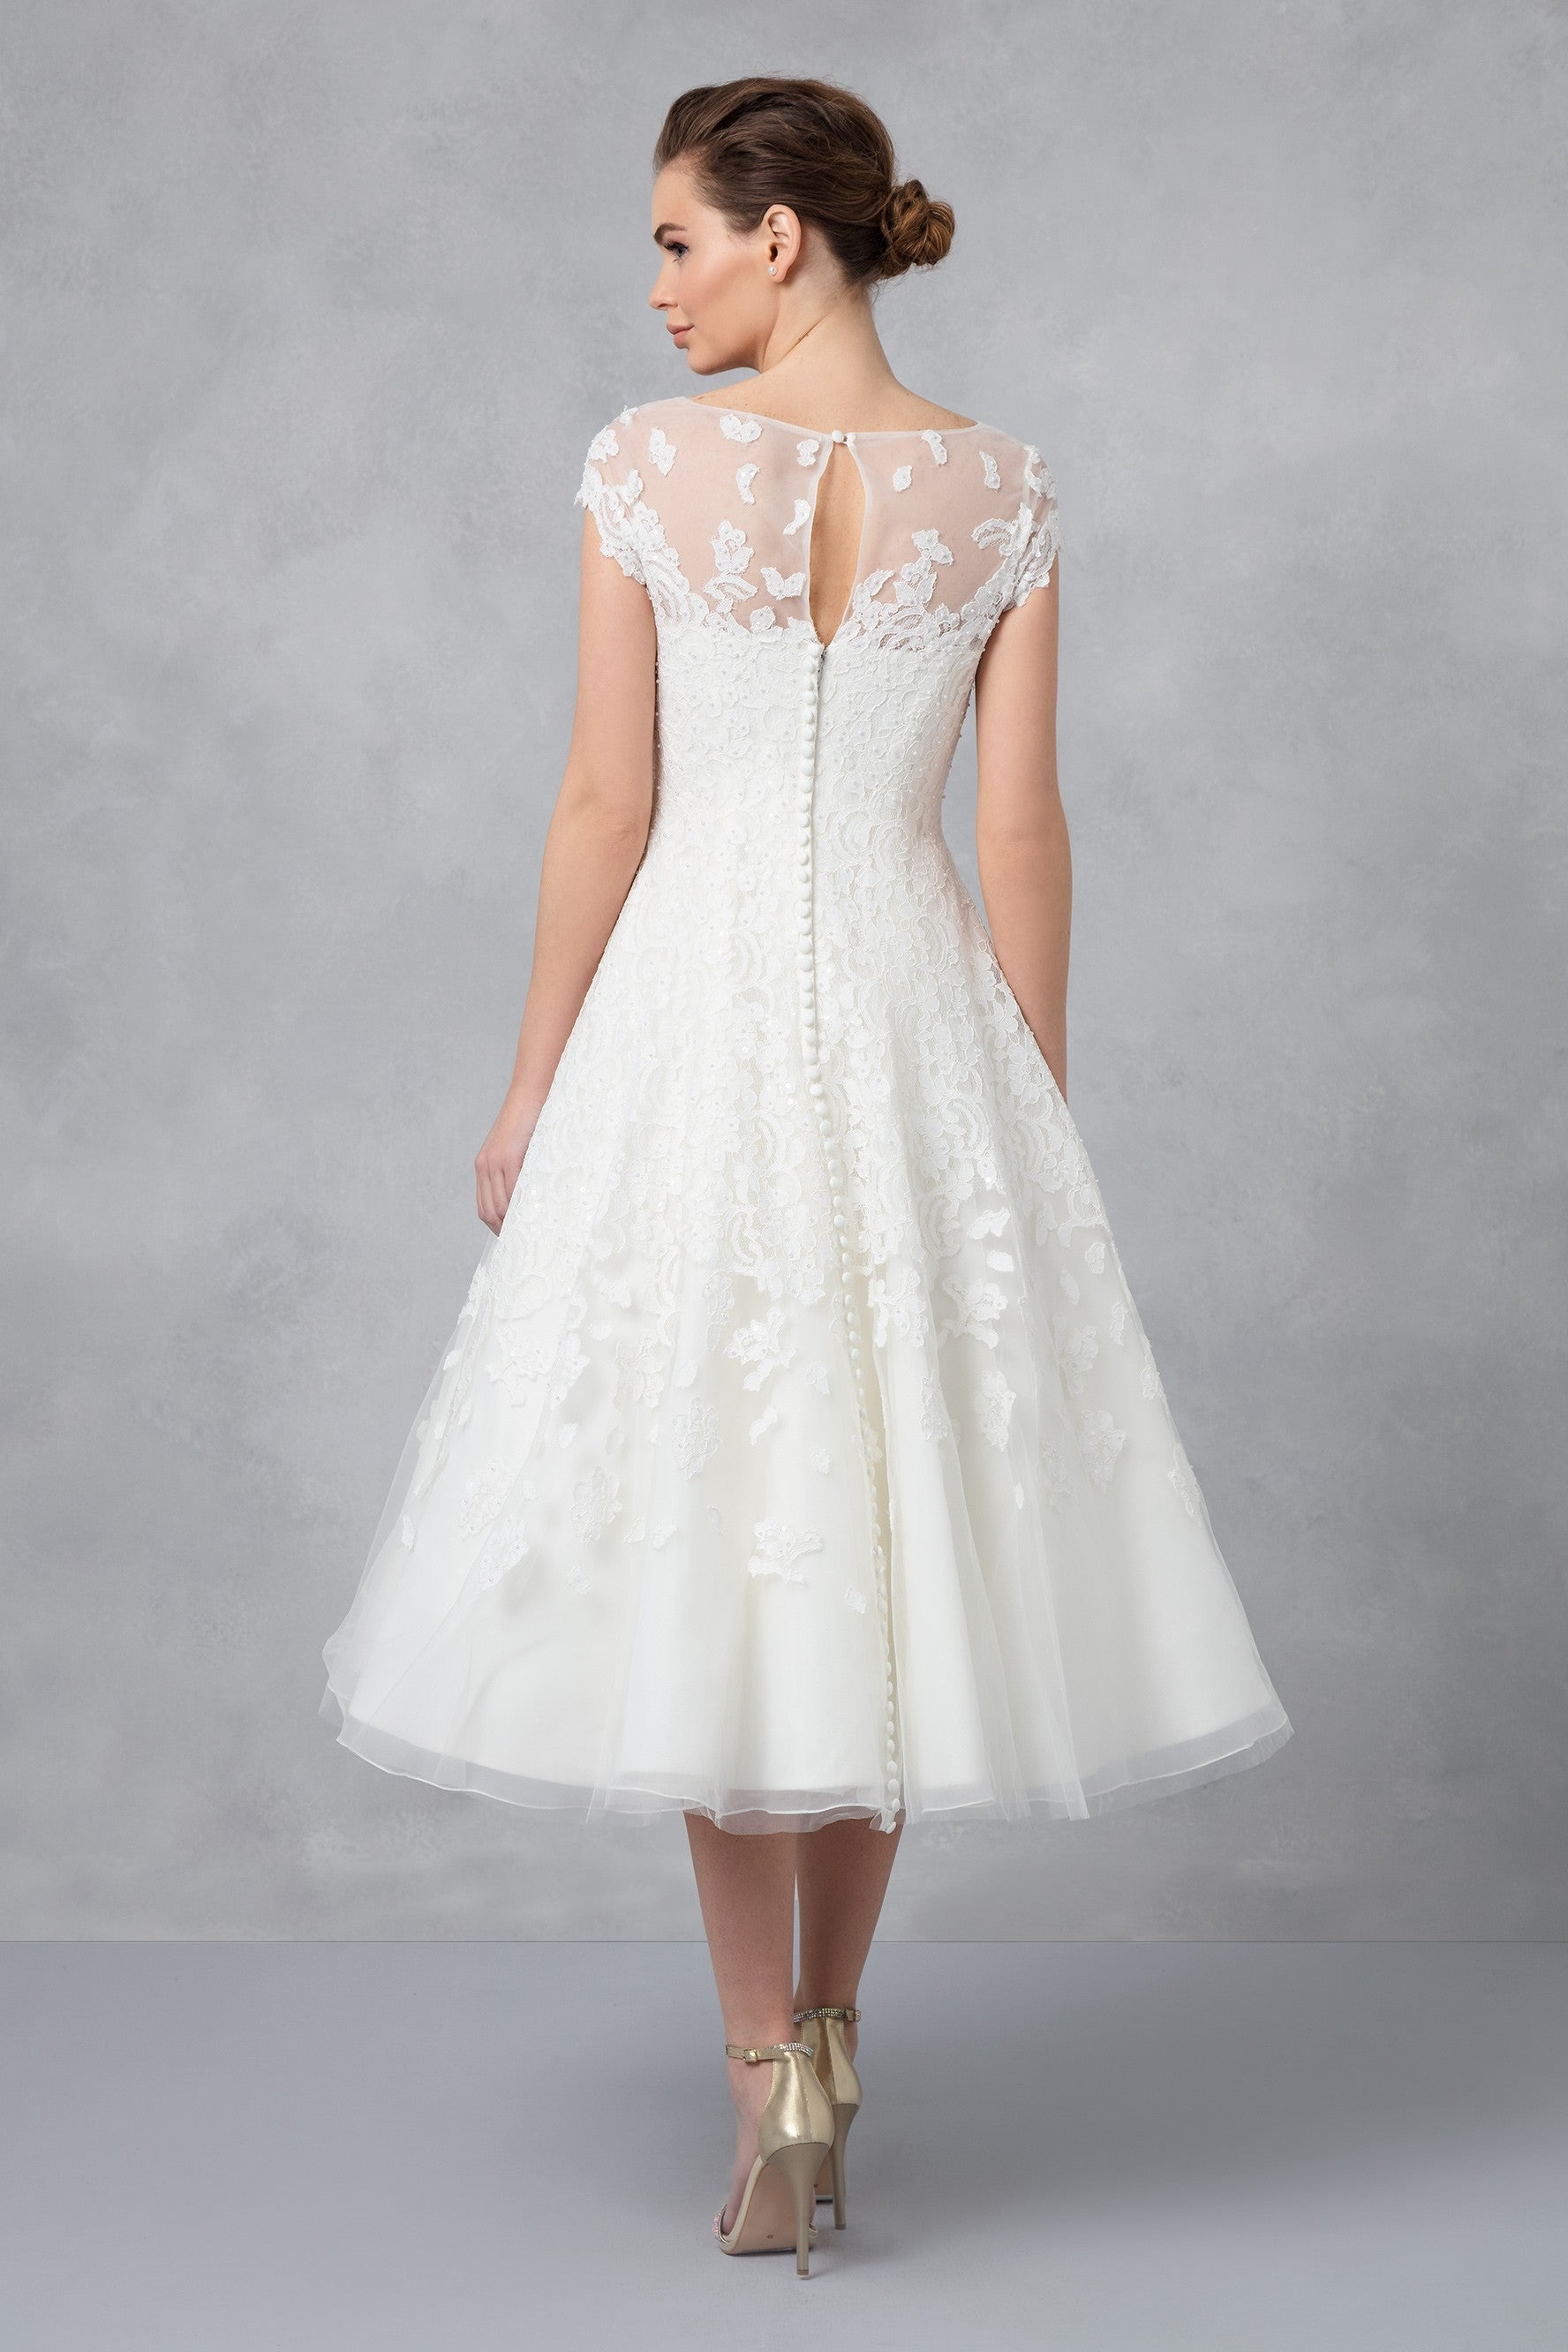 Cap Sleeve Illusion Wedding Dress Cmk513